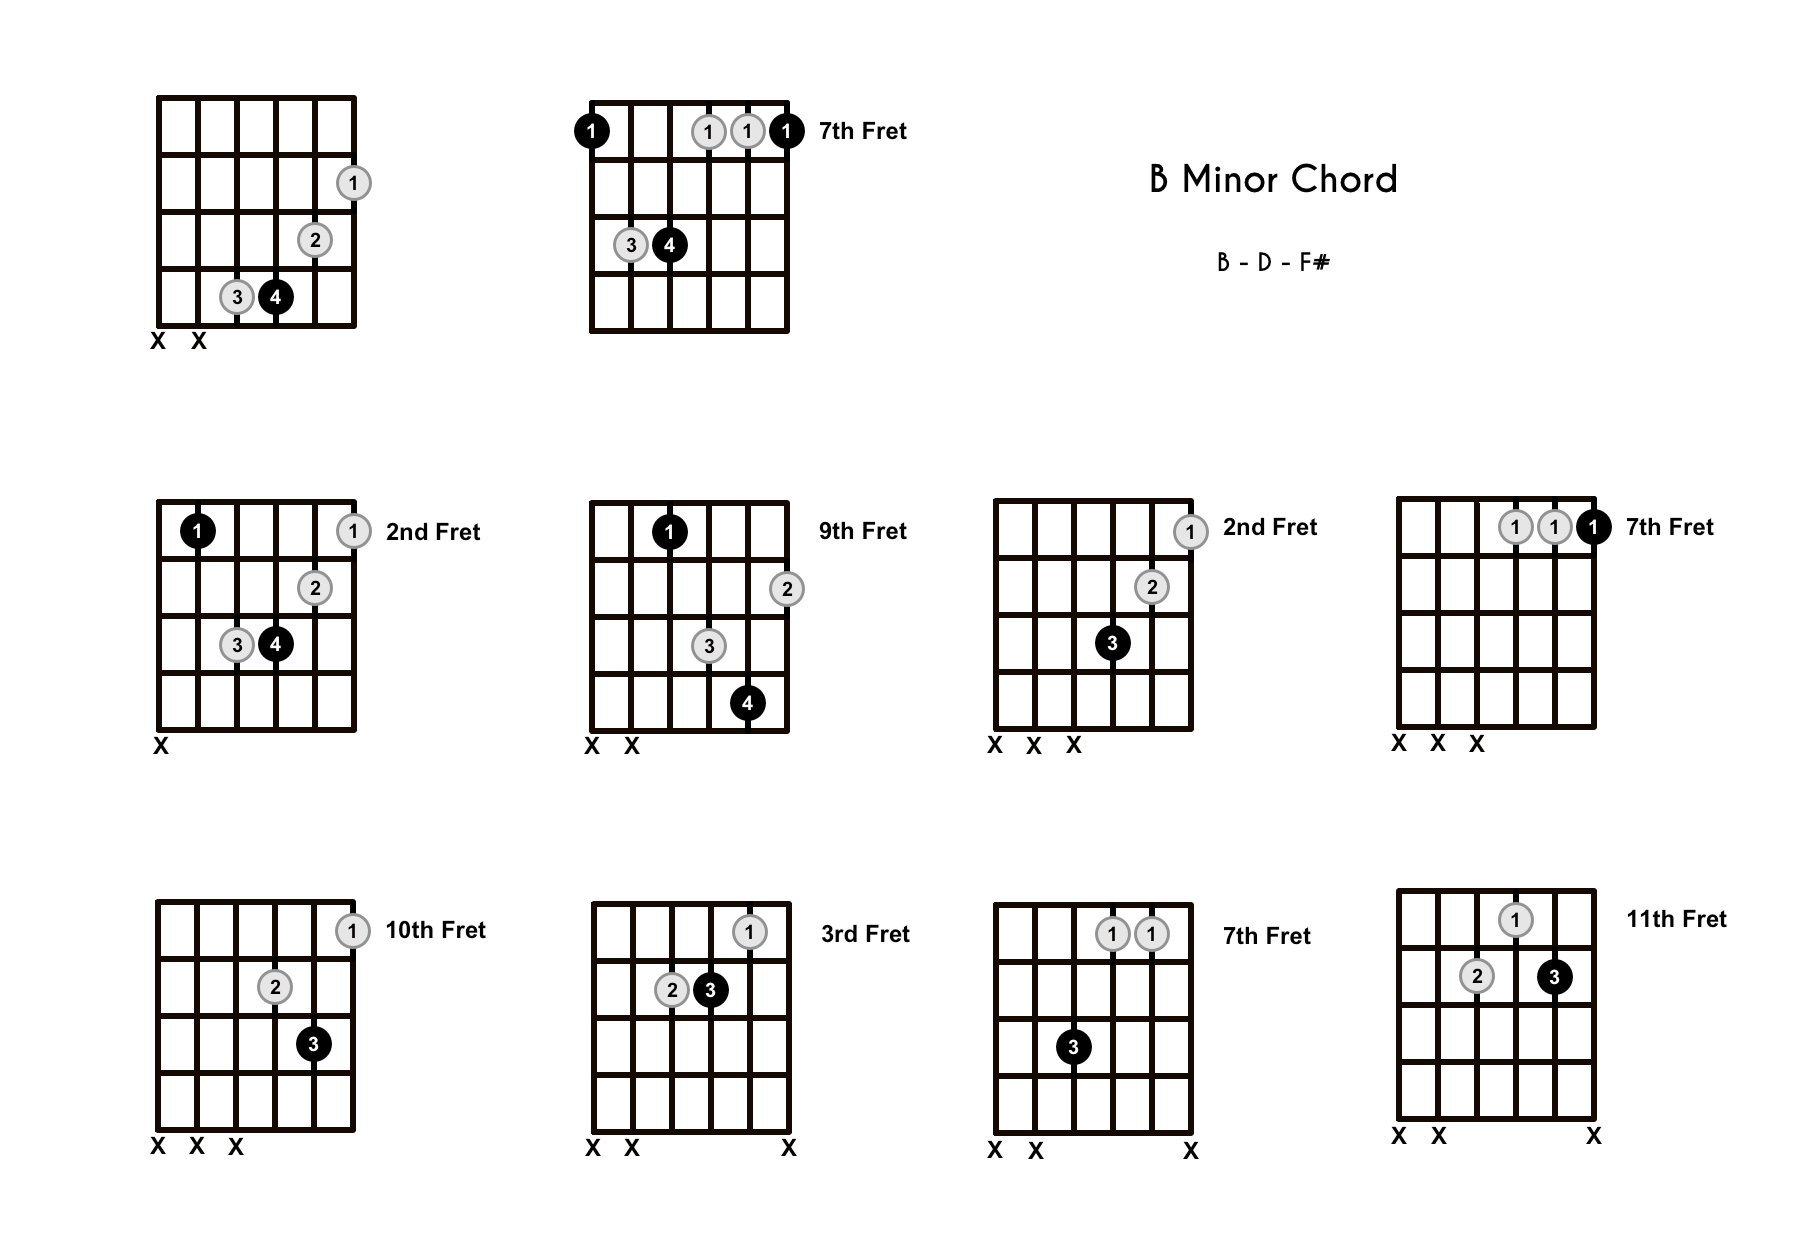 Bm Chord on the Guitar (B Minor) – Diagrams, Finger Positions, Theory